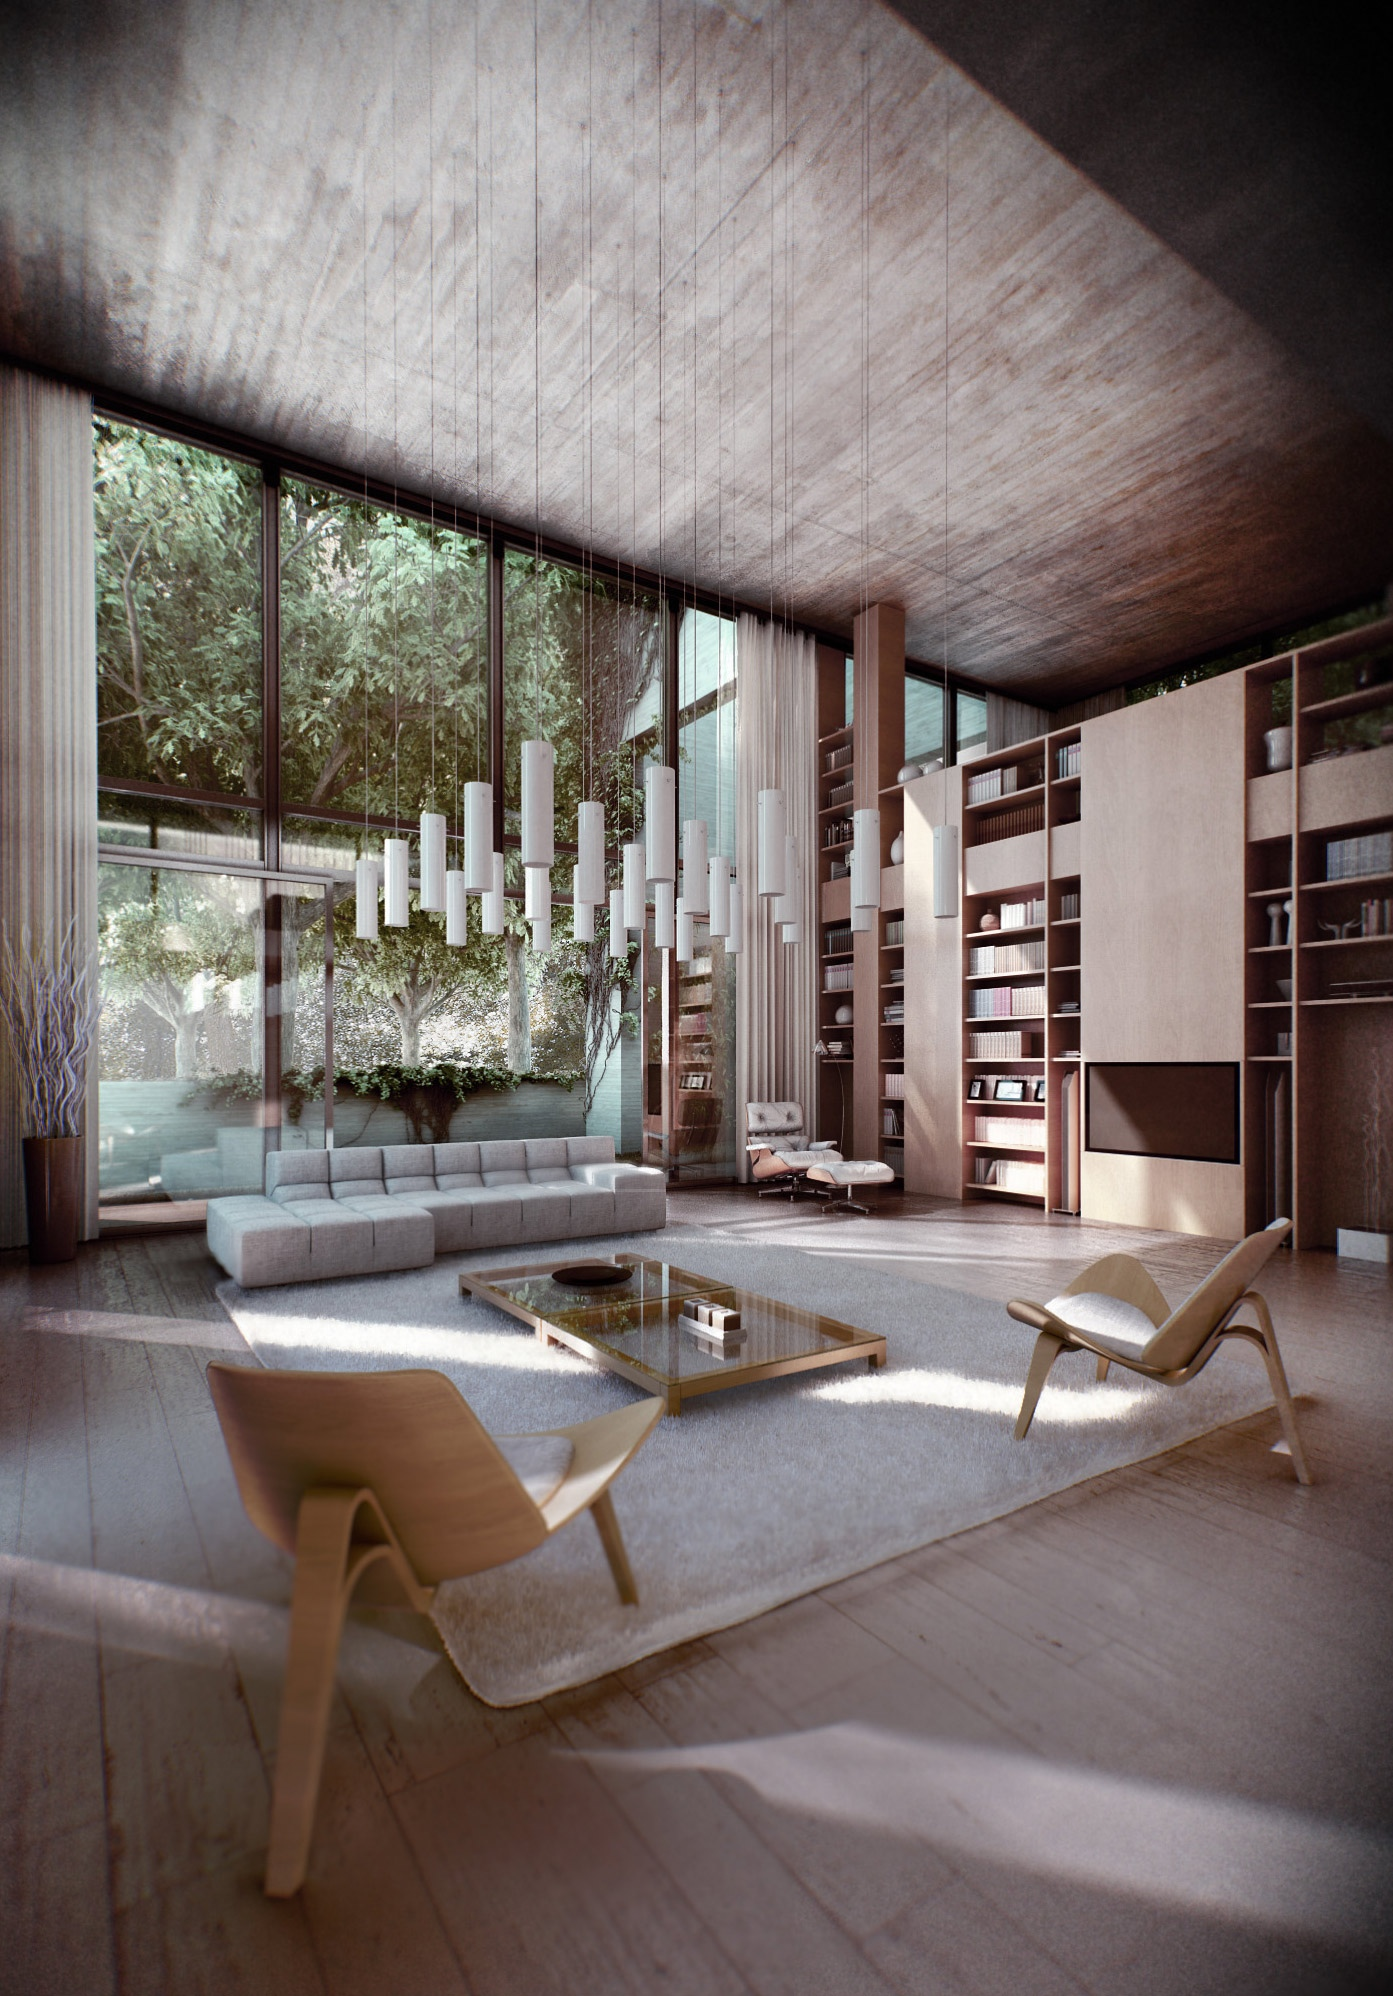 Zen inspired interior design Architecture interior design